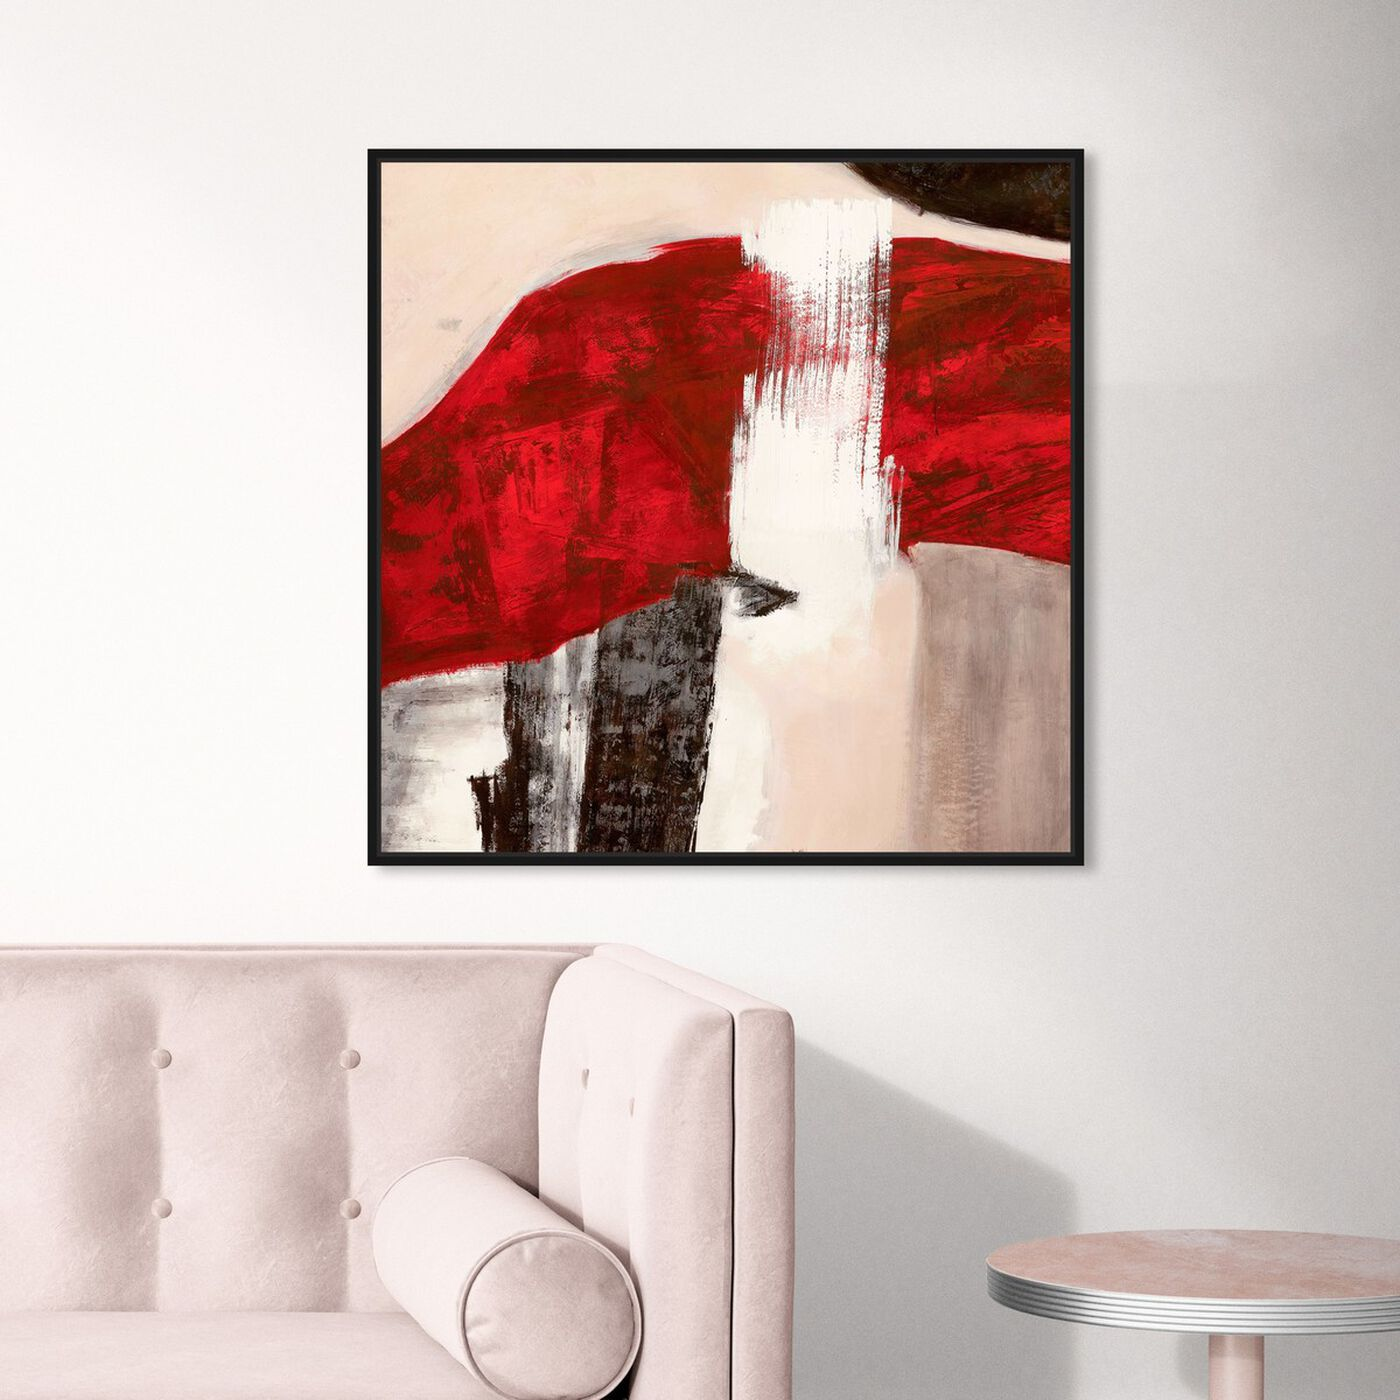 Hanging view of Sai - Rubrum III 1SN1858 featuring abstract and paint art.